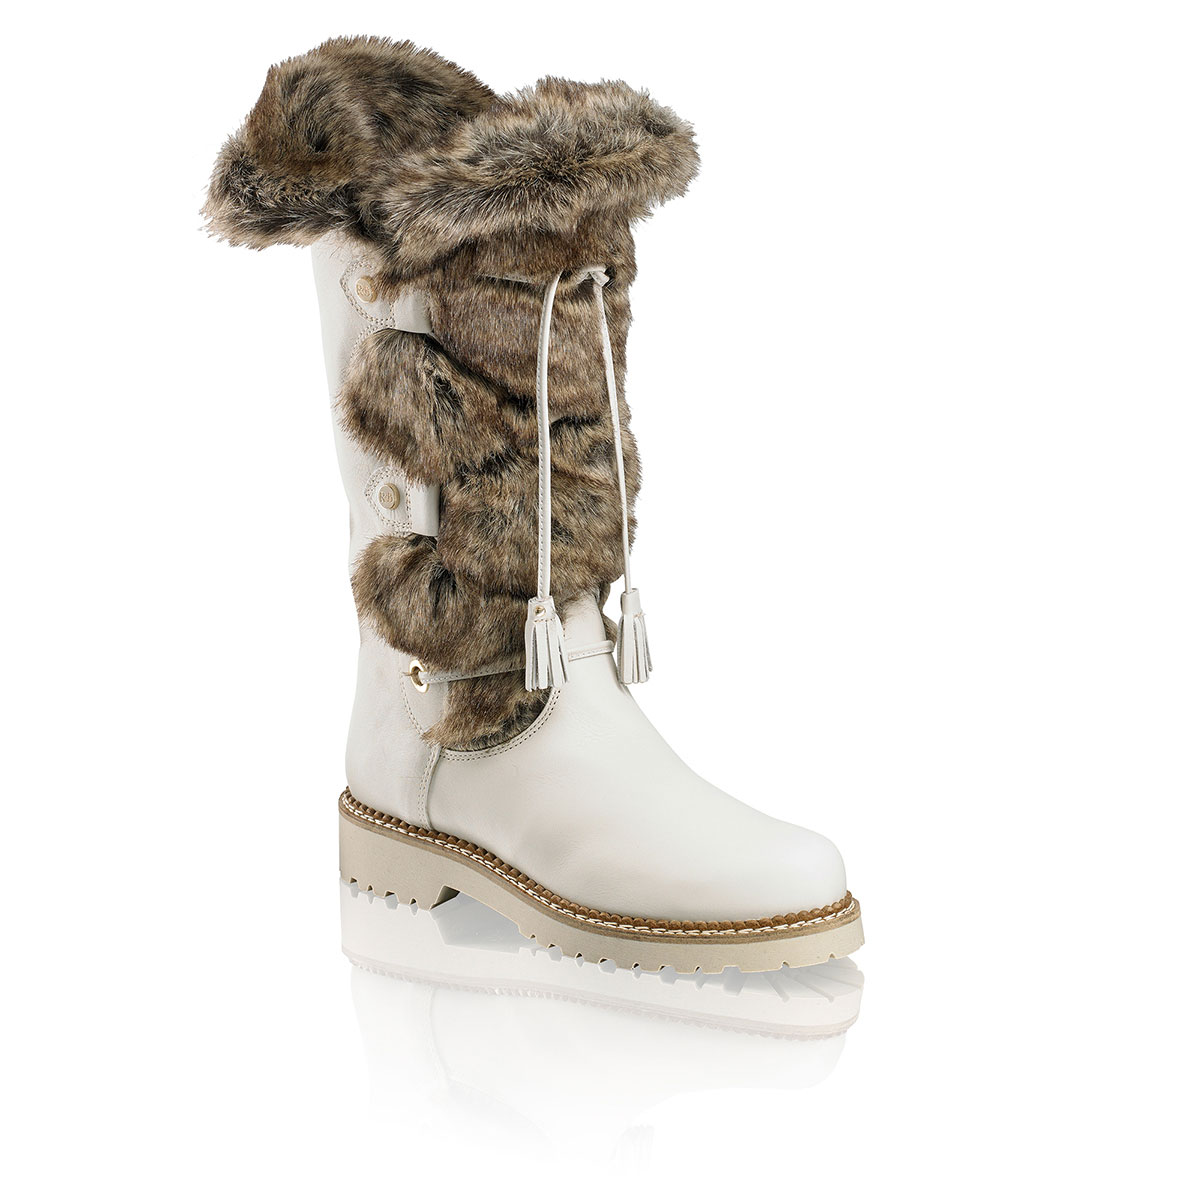 Russell And Bromley HIGHLANDER Faux-Fur Boot